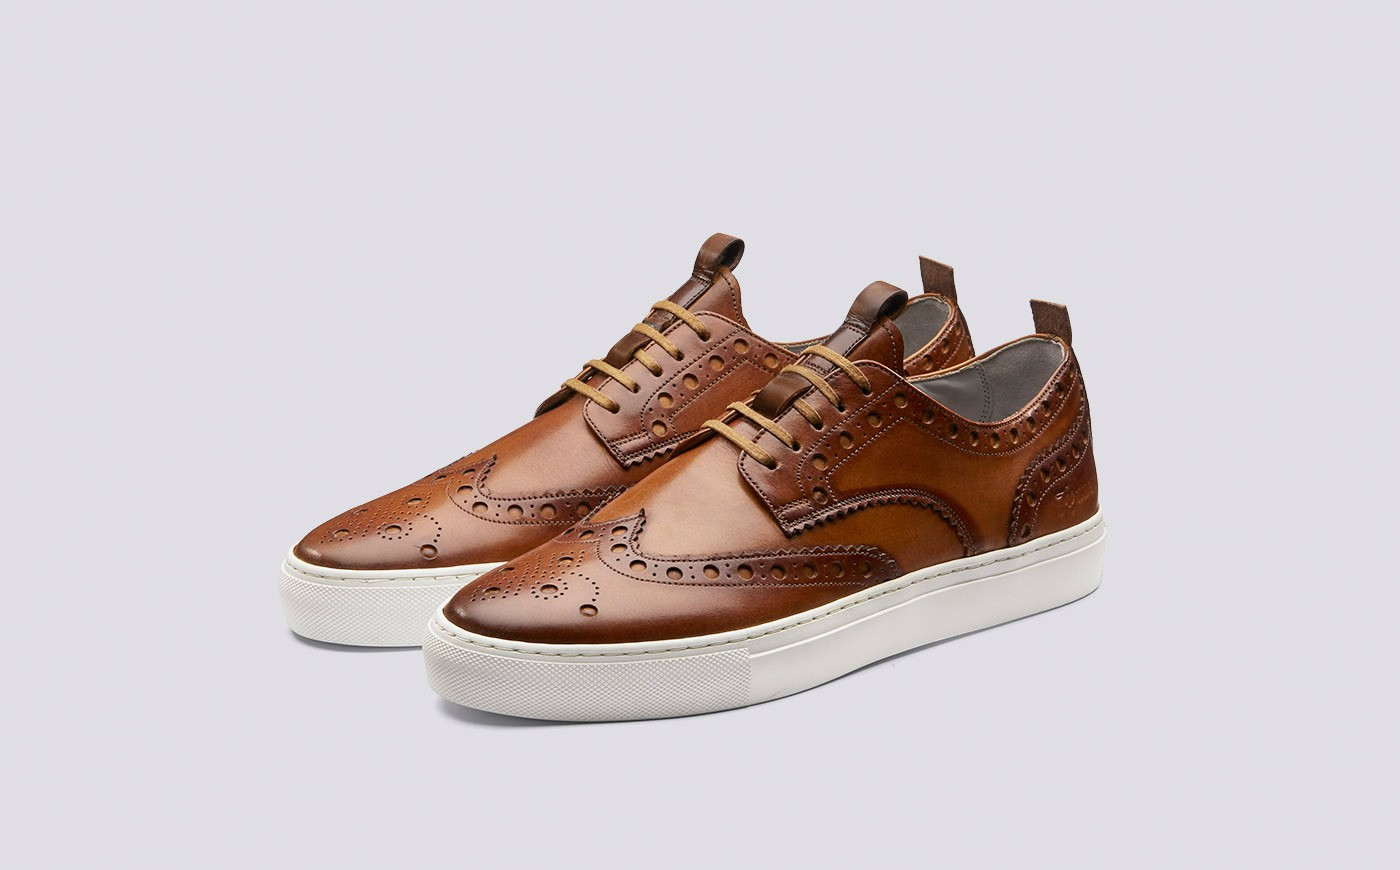 111453_-_sneaker_3_-_tan_hand_painted_calf_leather_-_brogue_sneaker_-_white_rubber_sole_-_3_quarter.jpg